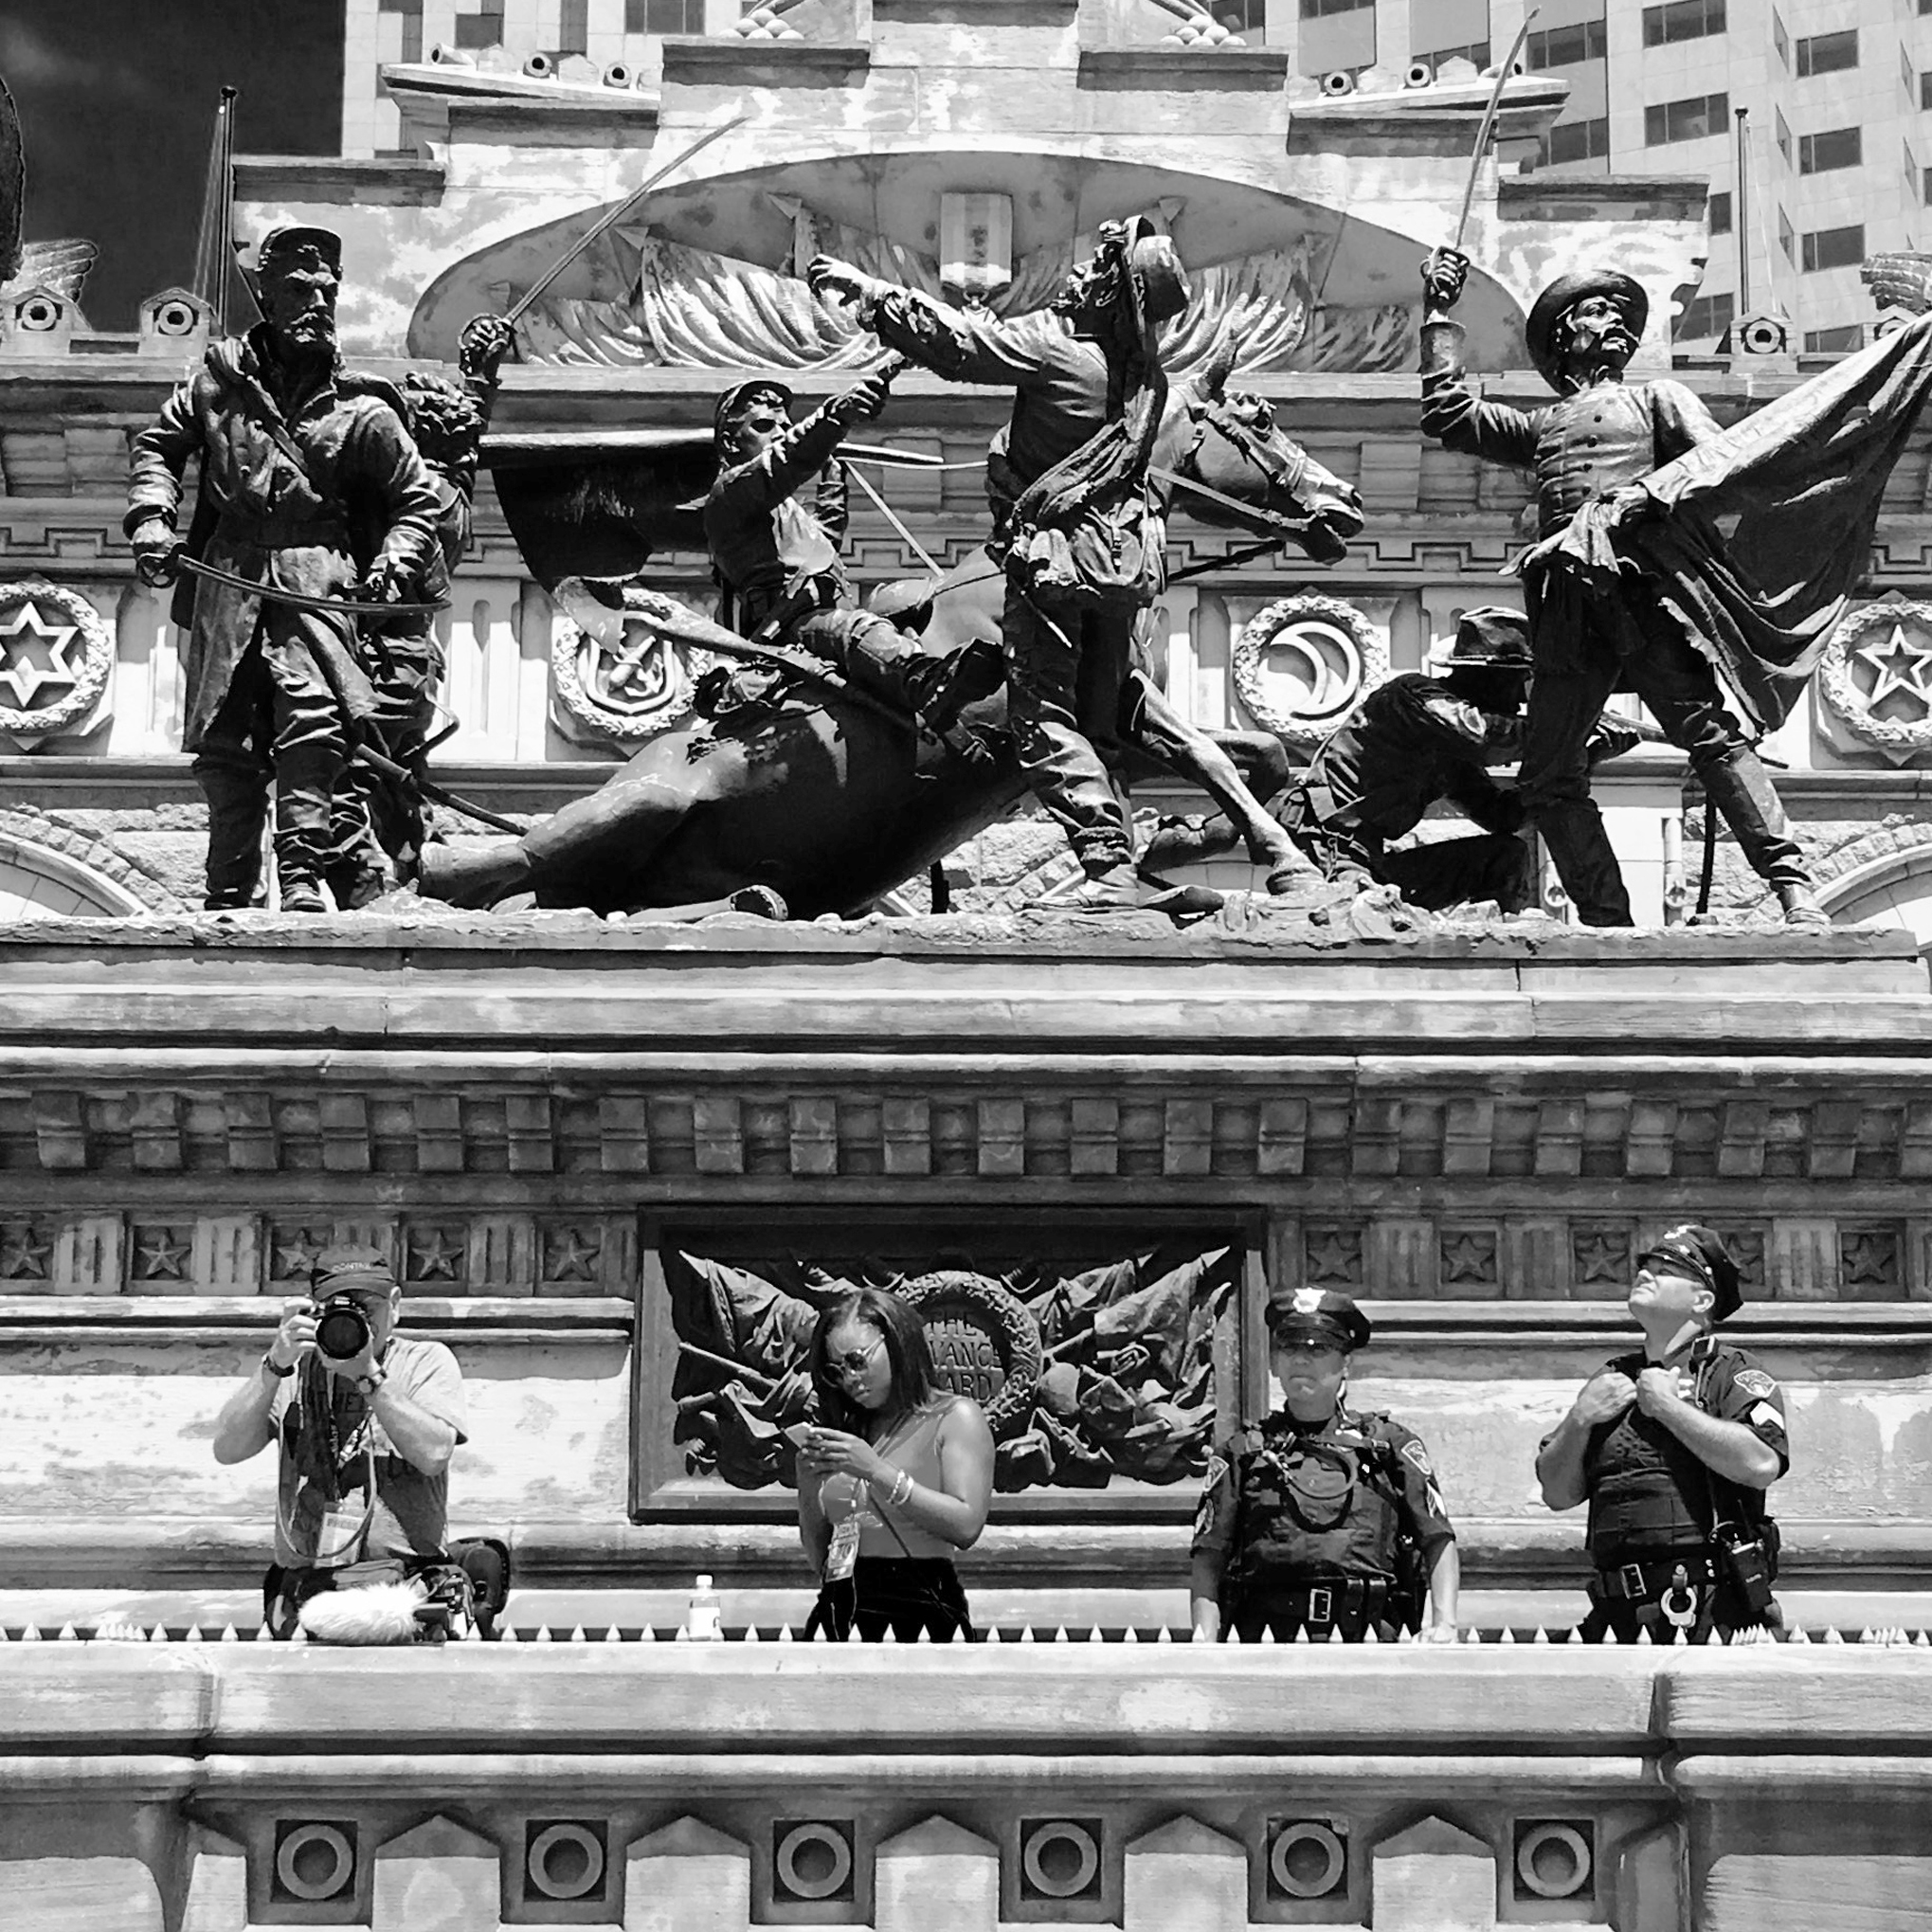 """ Cuyahoga  - Cleveland, 2016"" Photo © by Tony Puryear, 2016 all rights reserved. Photo of  Cuyahoga County Soldiers' and Sailors' Monument  in downtown Cleveland at Republican National Convention."